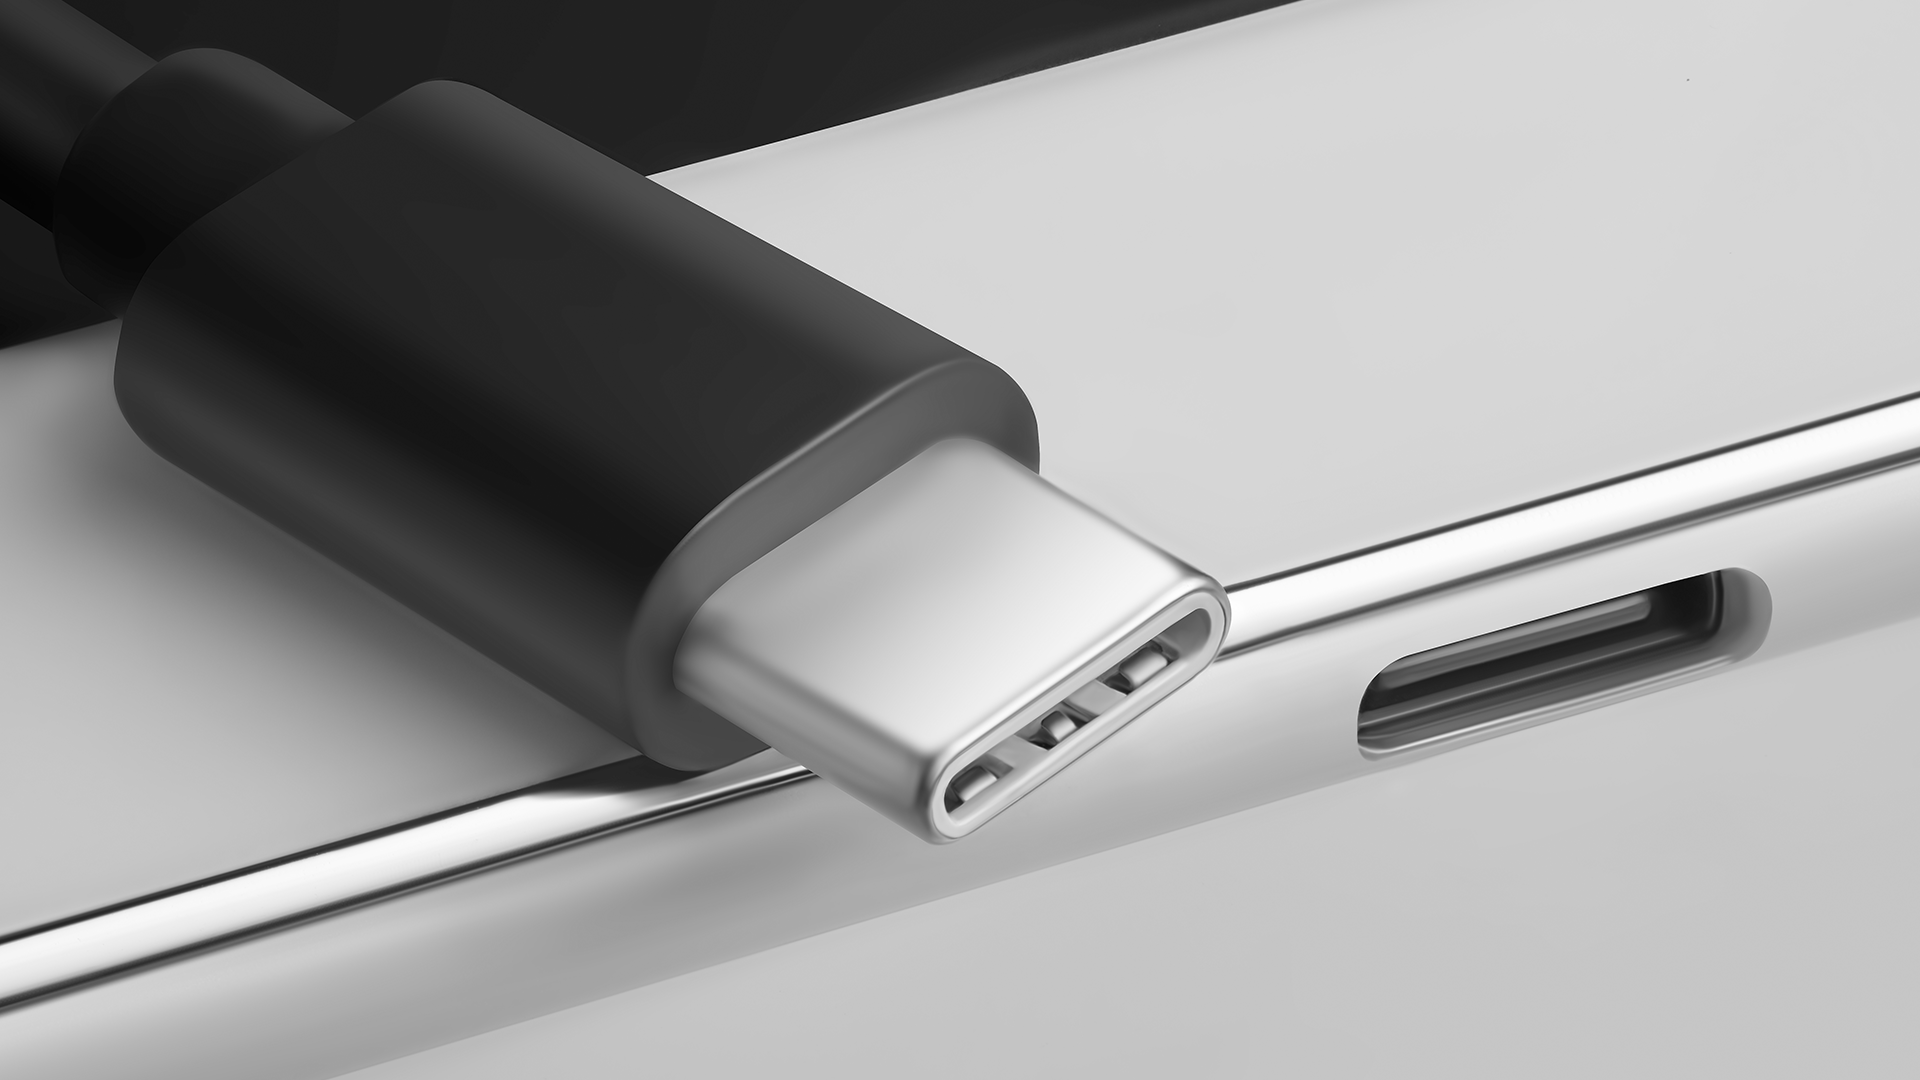 A USB-C cable sitting on top of a computer case.